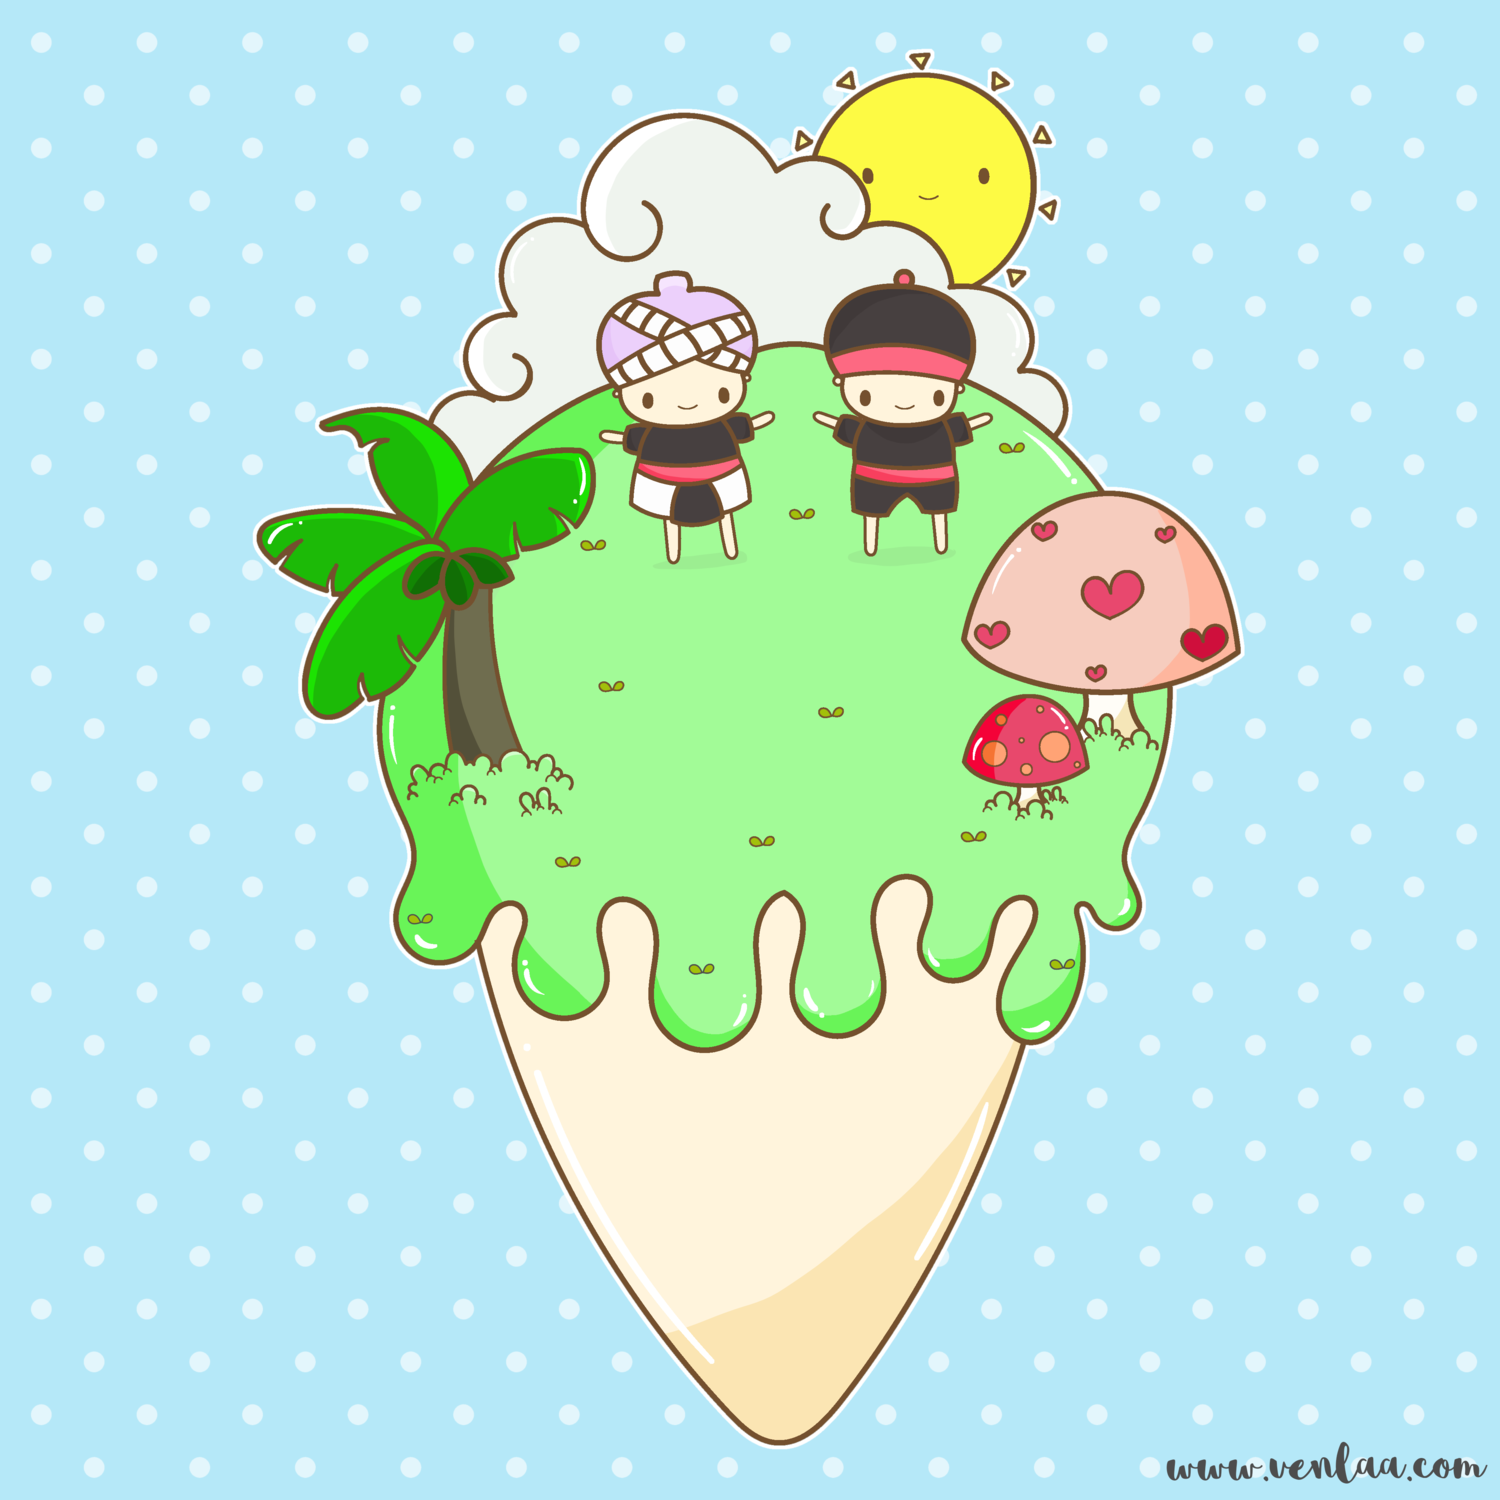 hmonggy-icecream-world-SQUARE-2015.png